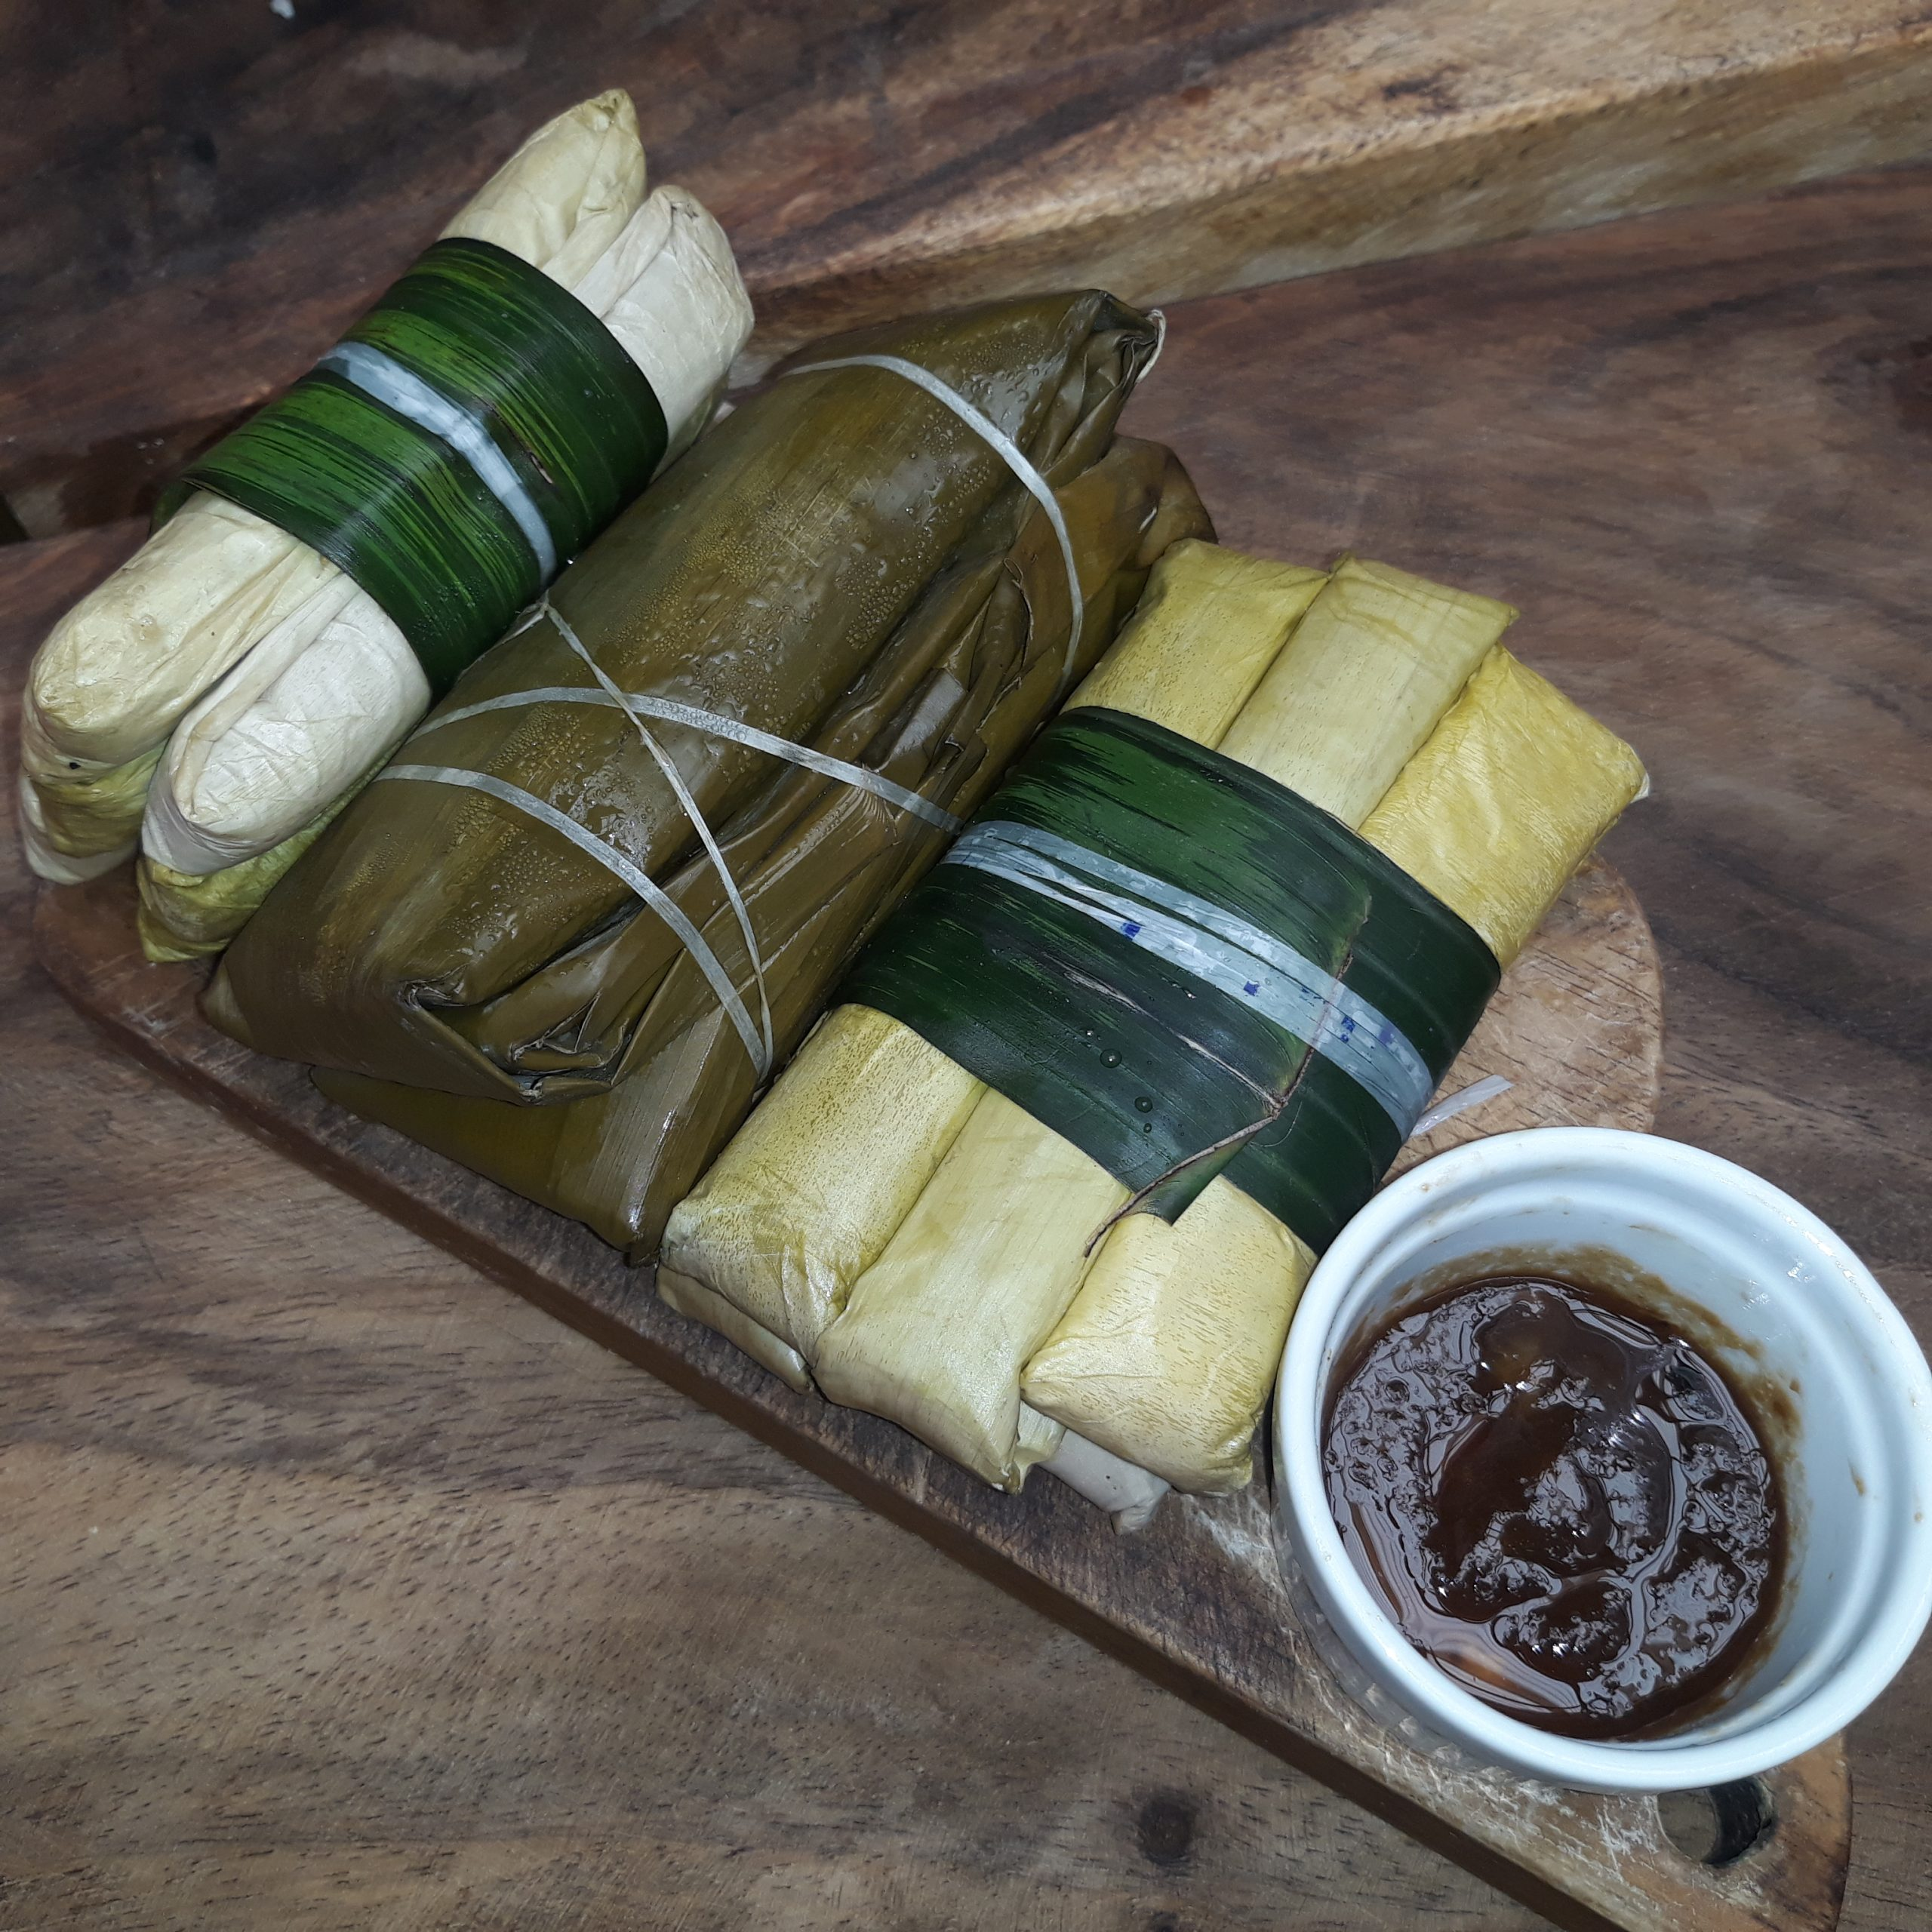 Suman wrapped in banana leaves with latik on the side.